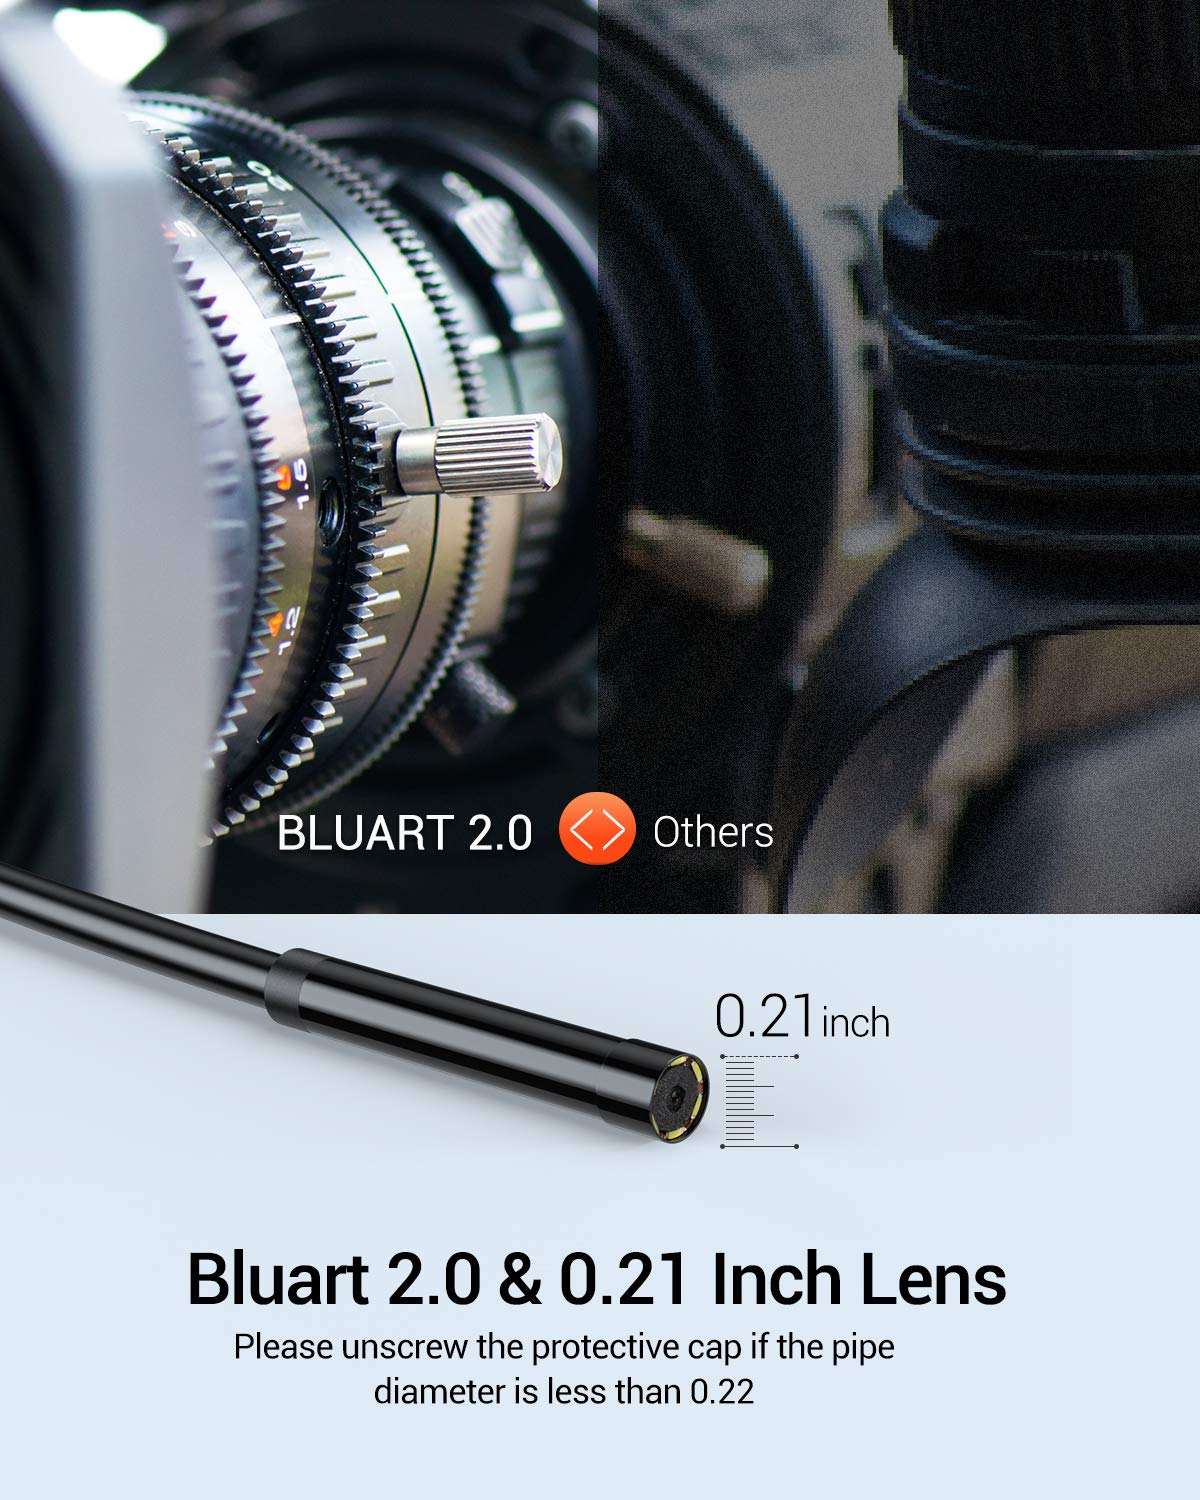 16.5FT DEPSTECH 5.5mm WiFi Borescope with 2200 mAh Battery Sewer Drain Pipeline Inspection Camera Android Tablet Wireless Endoscope Camera 1080P HD Semi-Rigid Snake Camera for iPhone